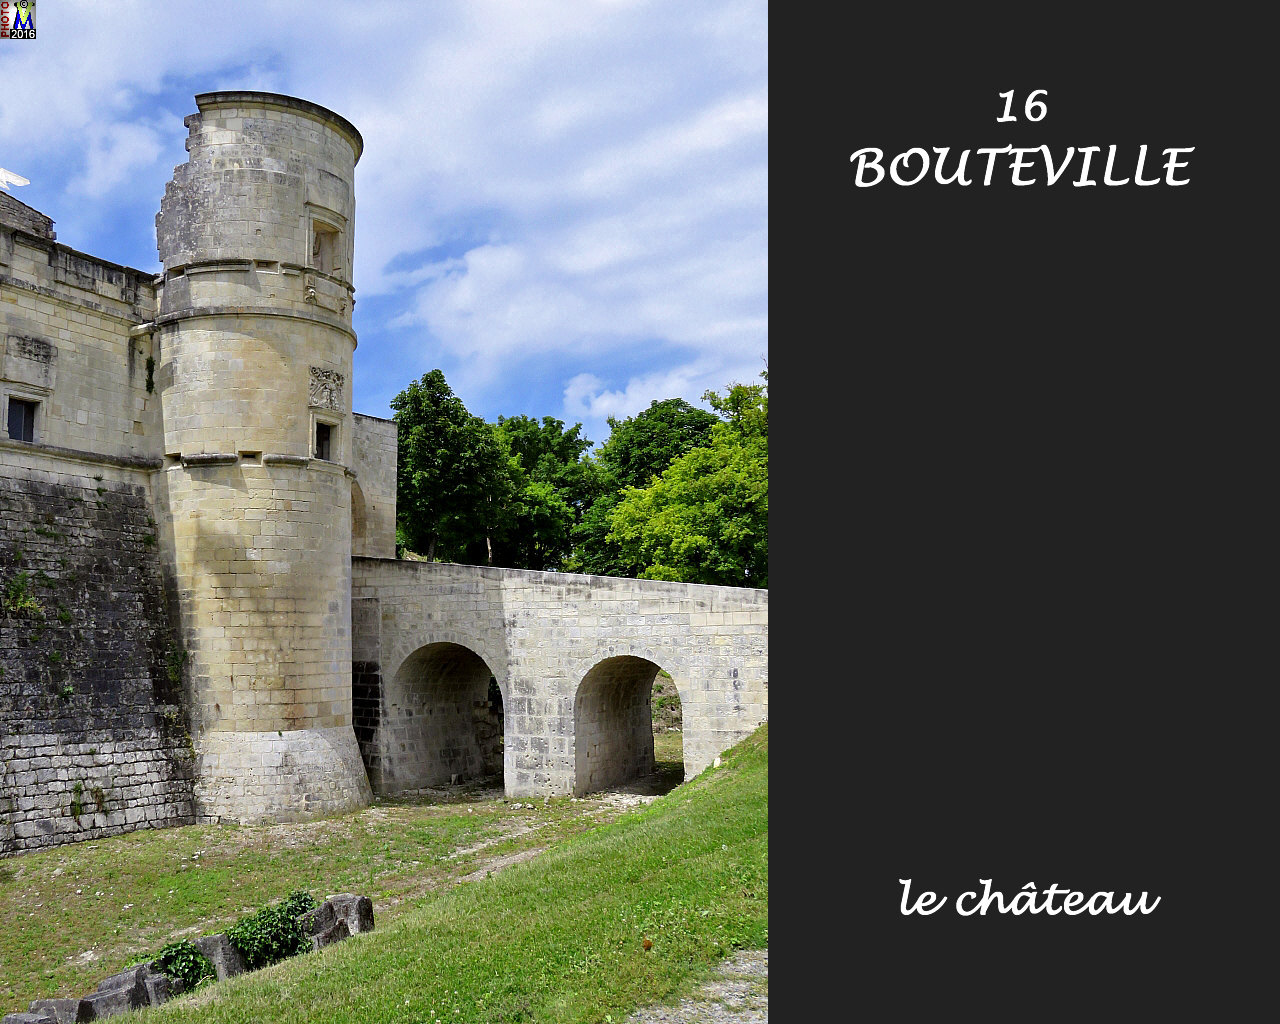 16BOUTEVILLE_chateau_1014.jpg